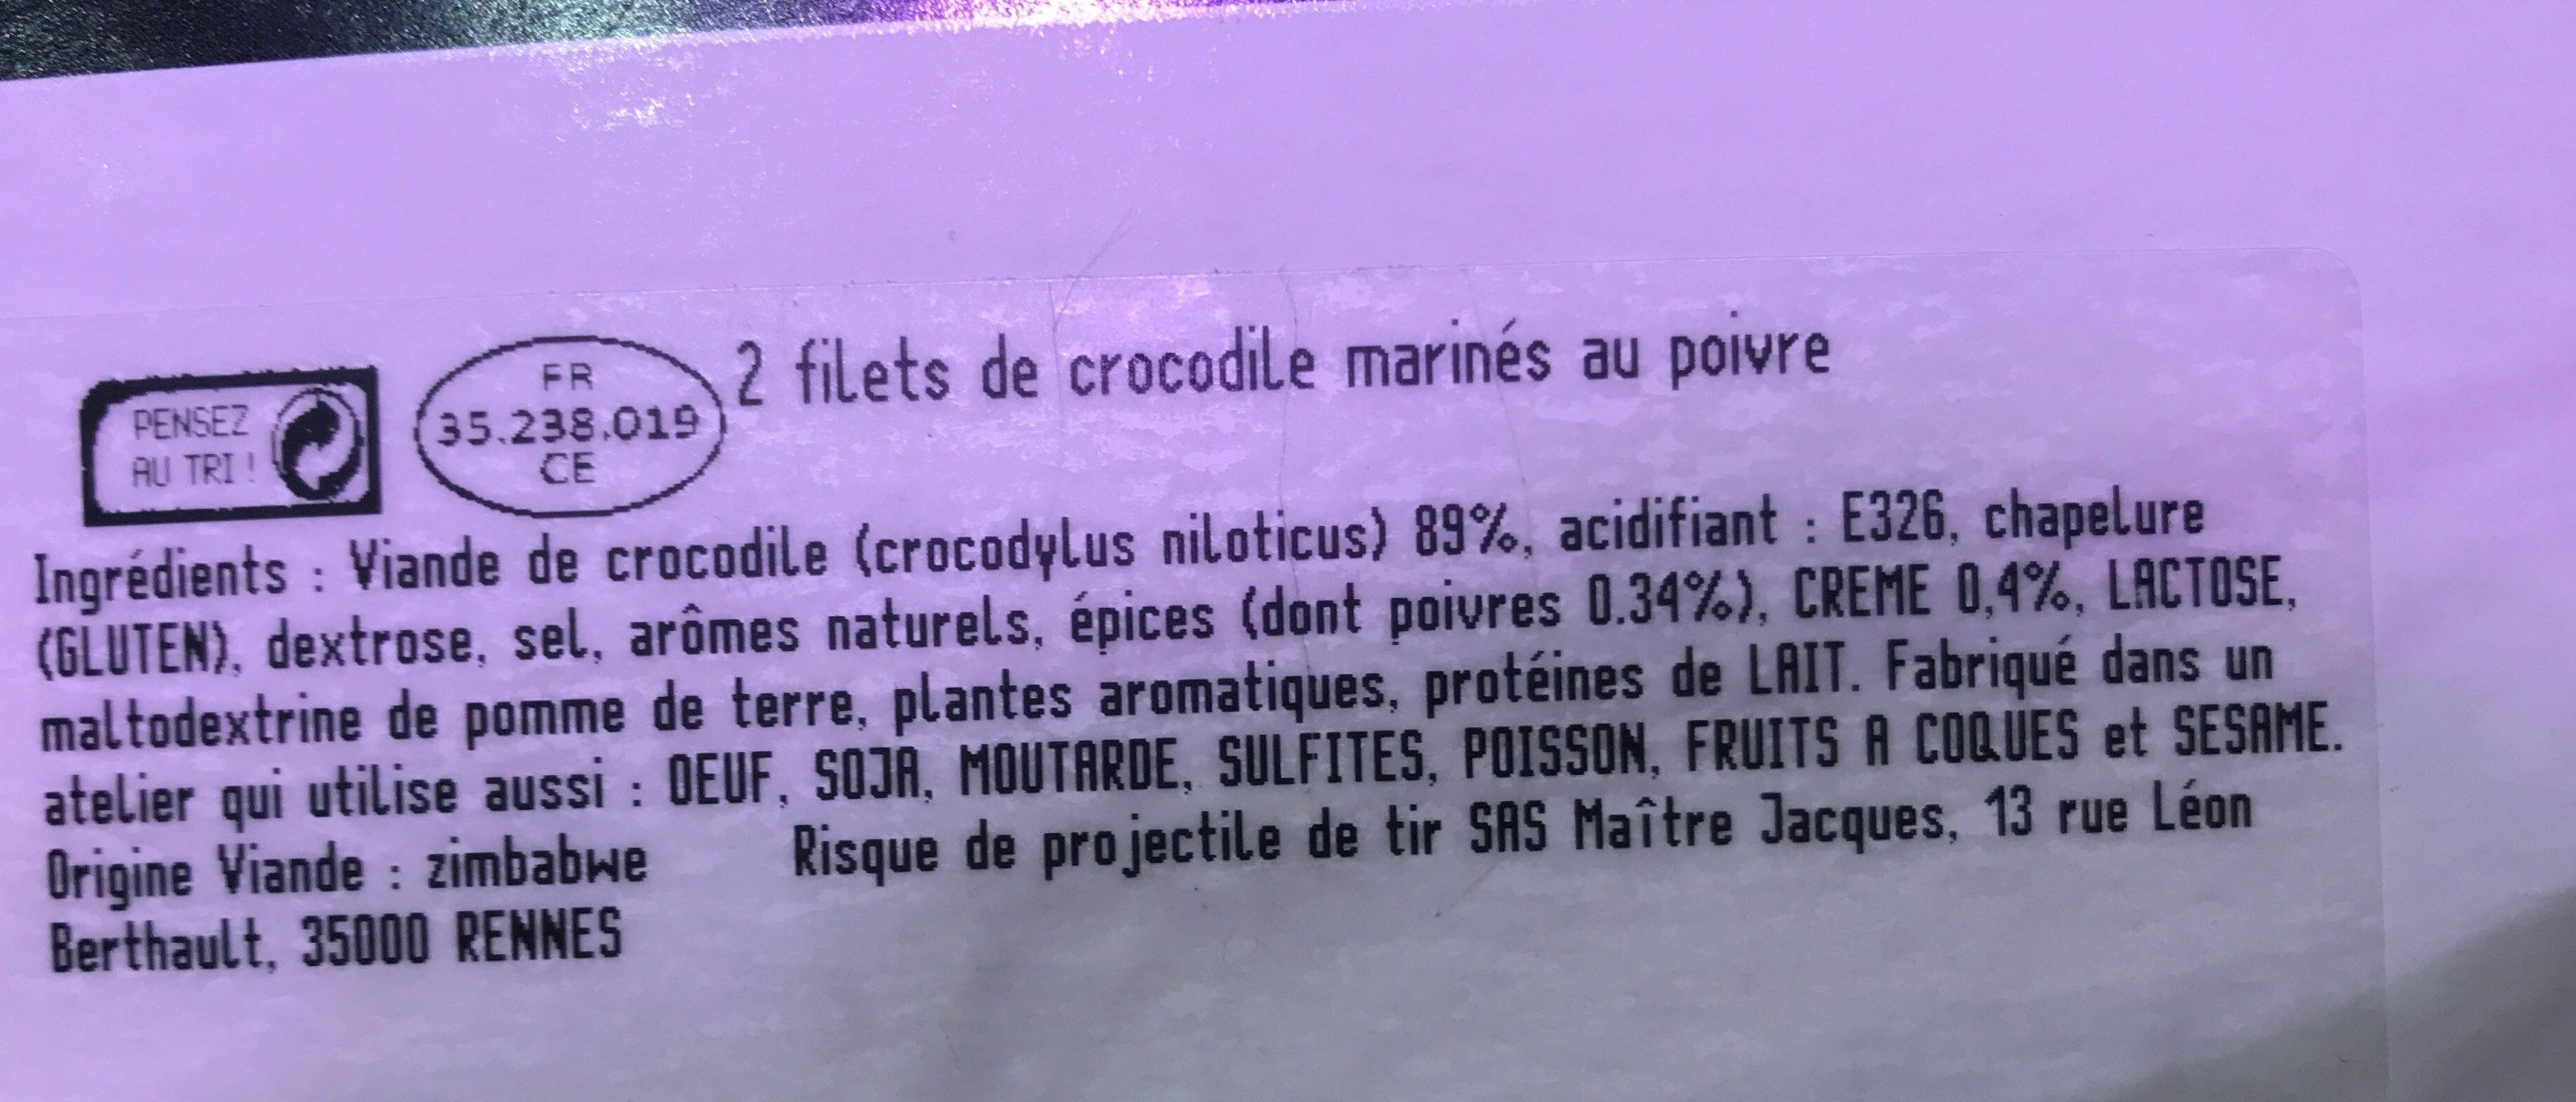 Filets de crocodile - Ingredients - fr